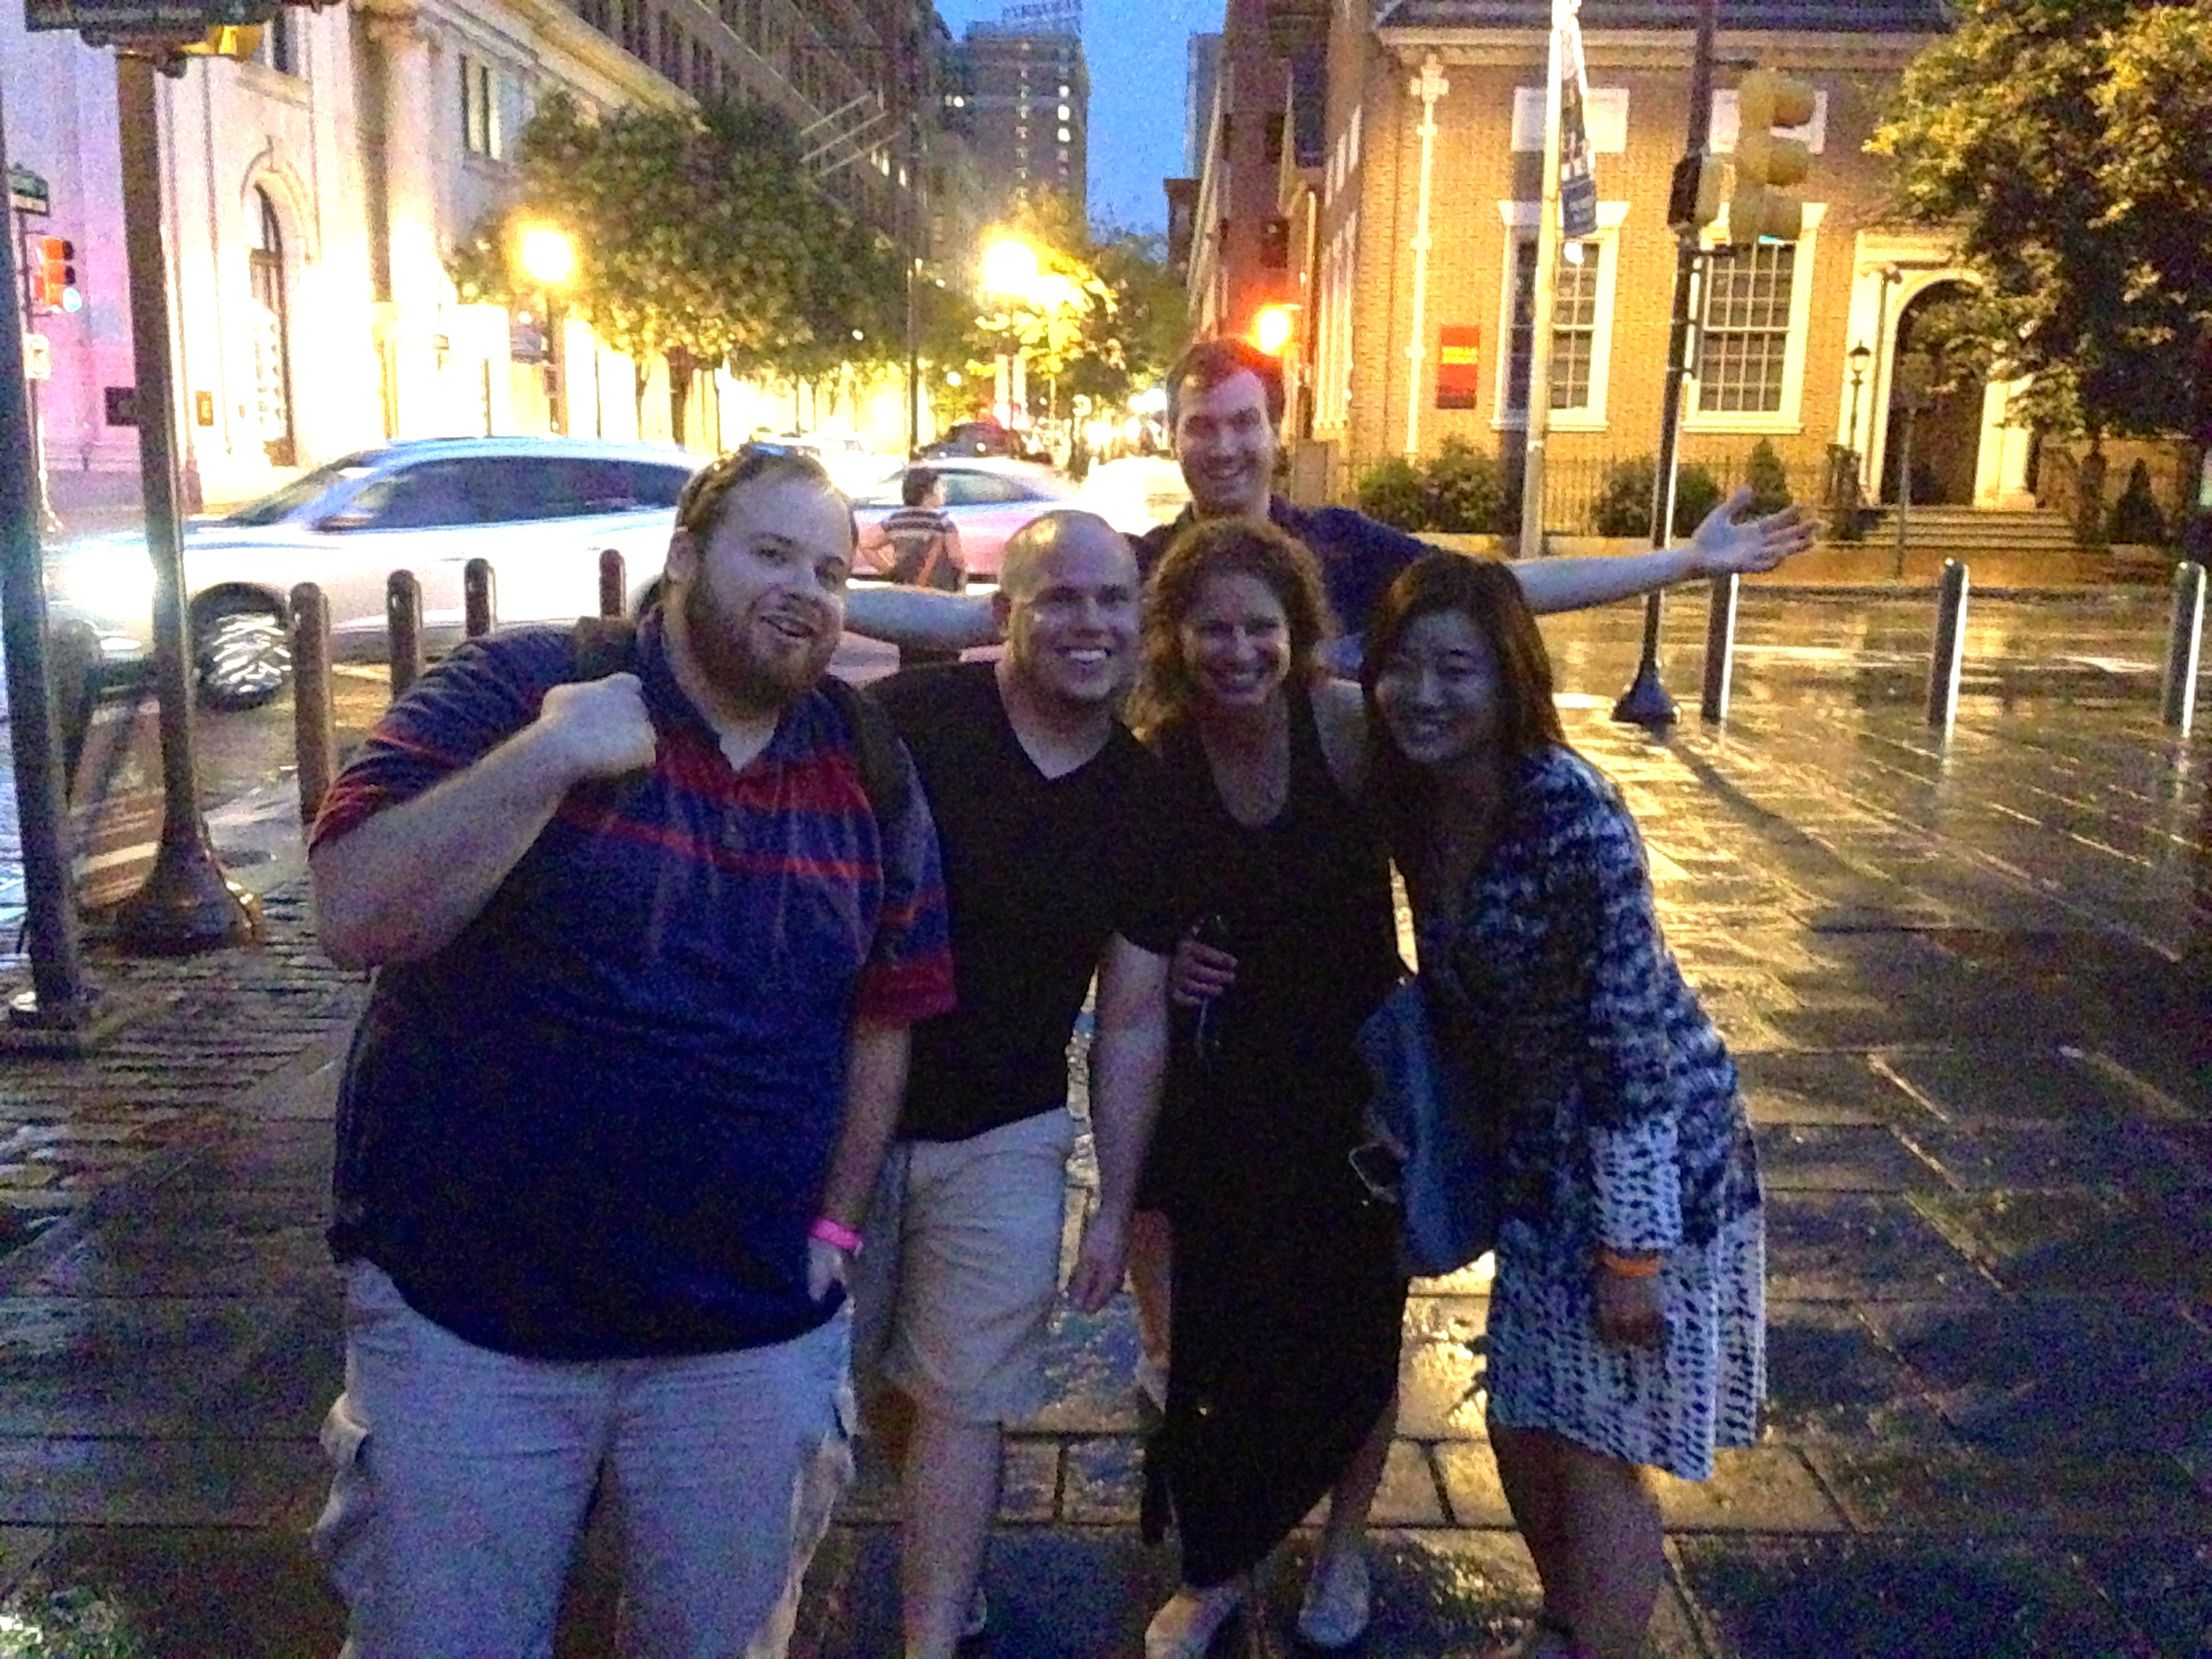 Josh, Tim, Alyssa, Esther and Jonathan on the cobbled streets of Old City.